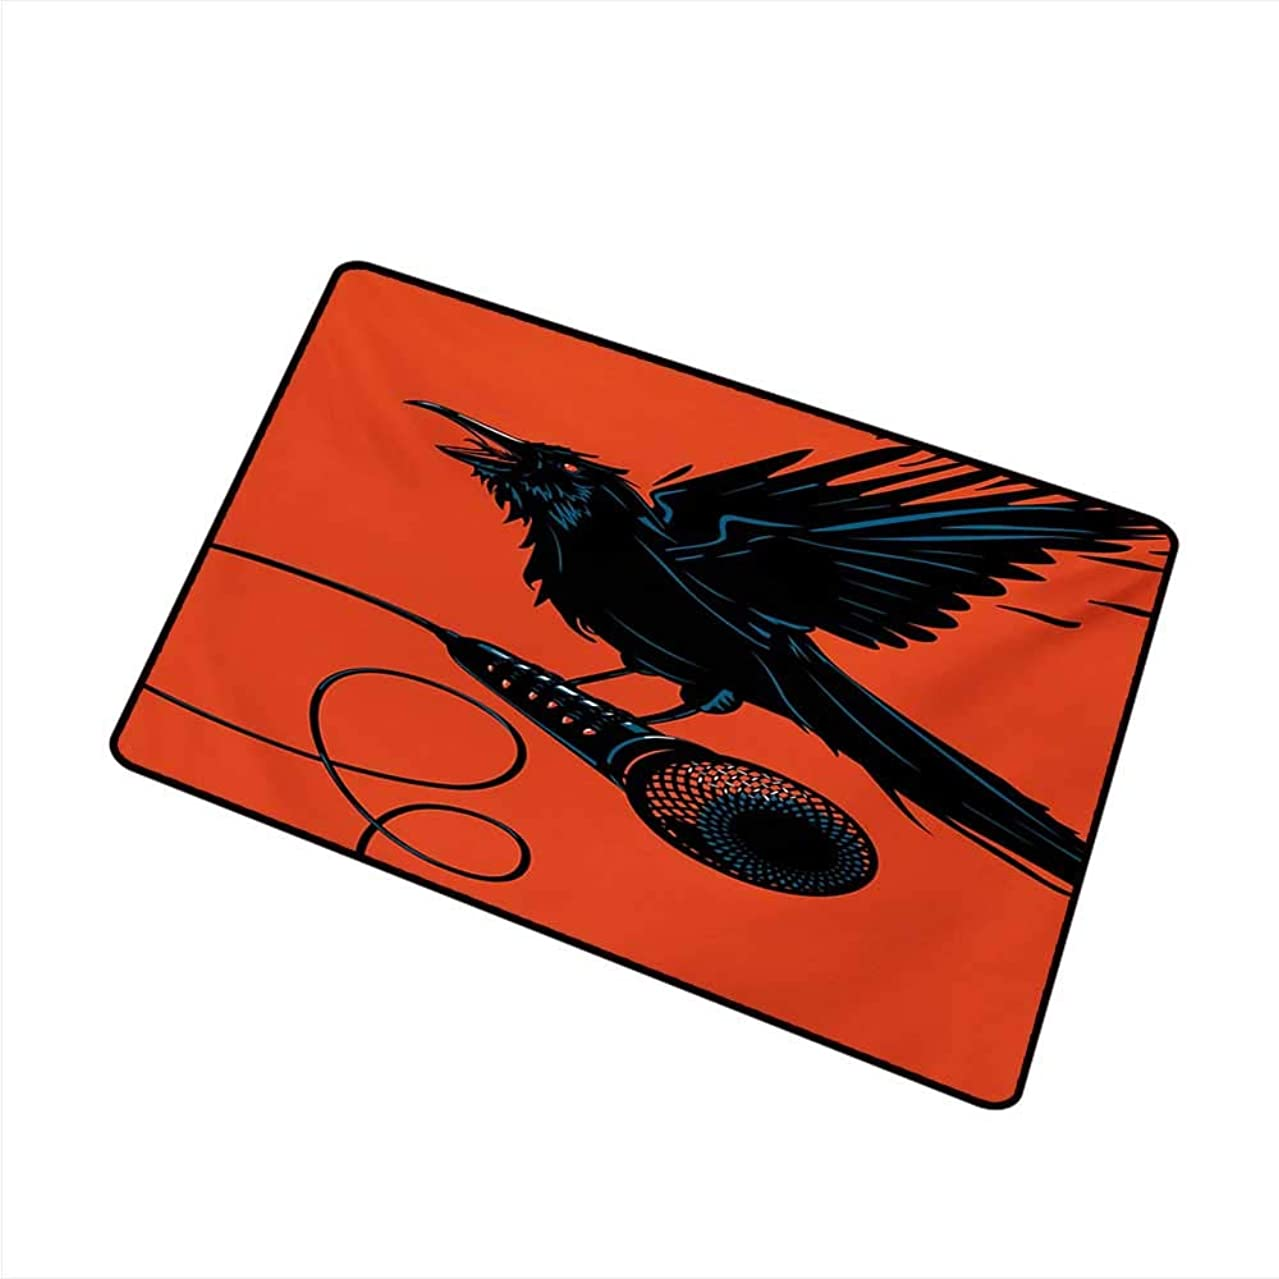 Diycon Welcome Door mat Indie Raven is Holding a Microphone Rock Music Theme Festival Party Gothic Singer W16 xL20 Country Home Decor